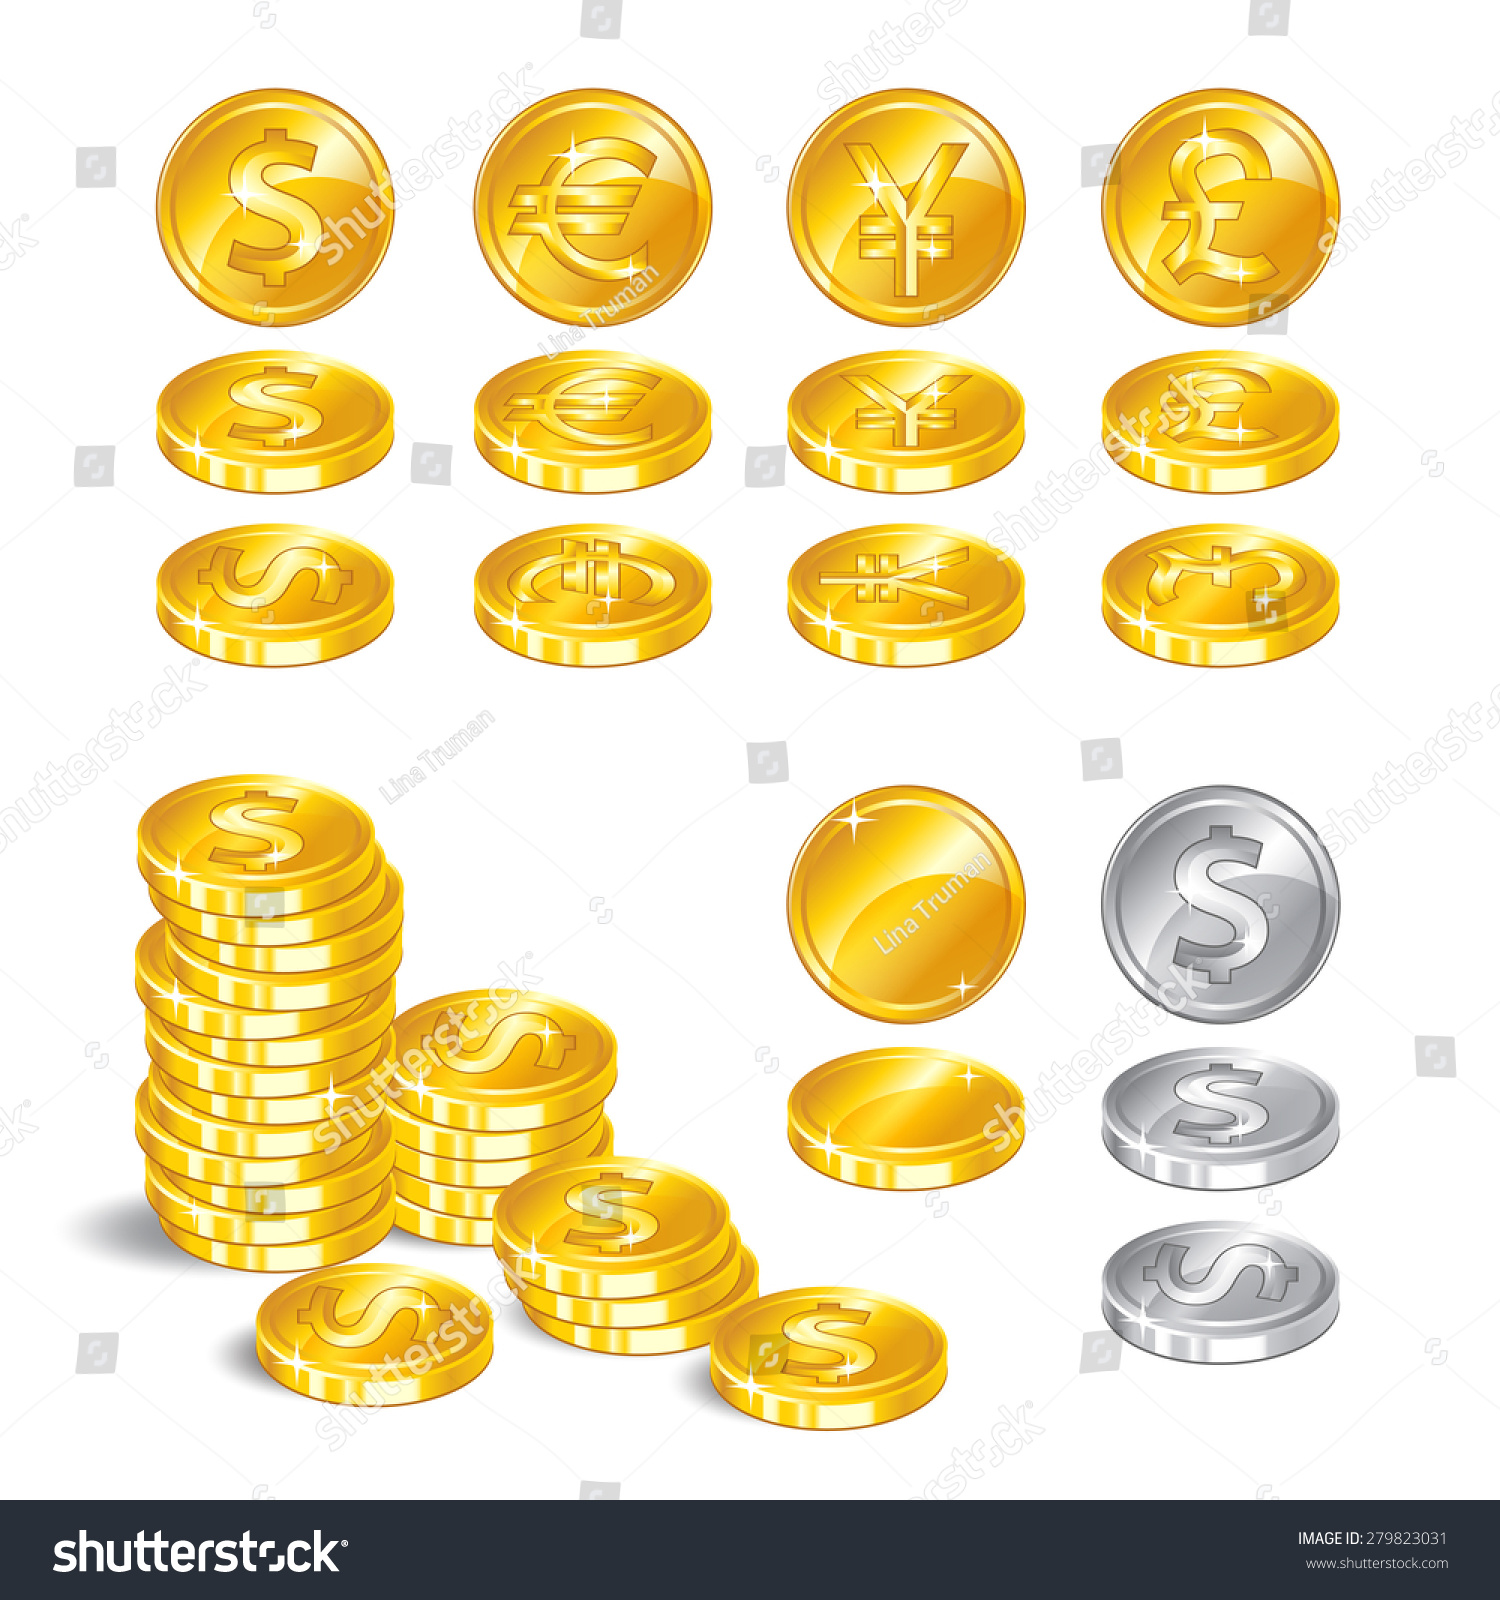 Gold Coins Signs World Currencies Symbol Stock Illustration